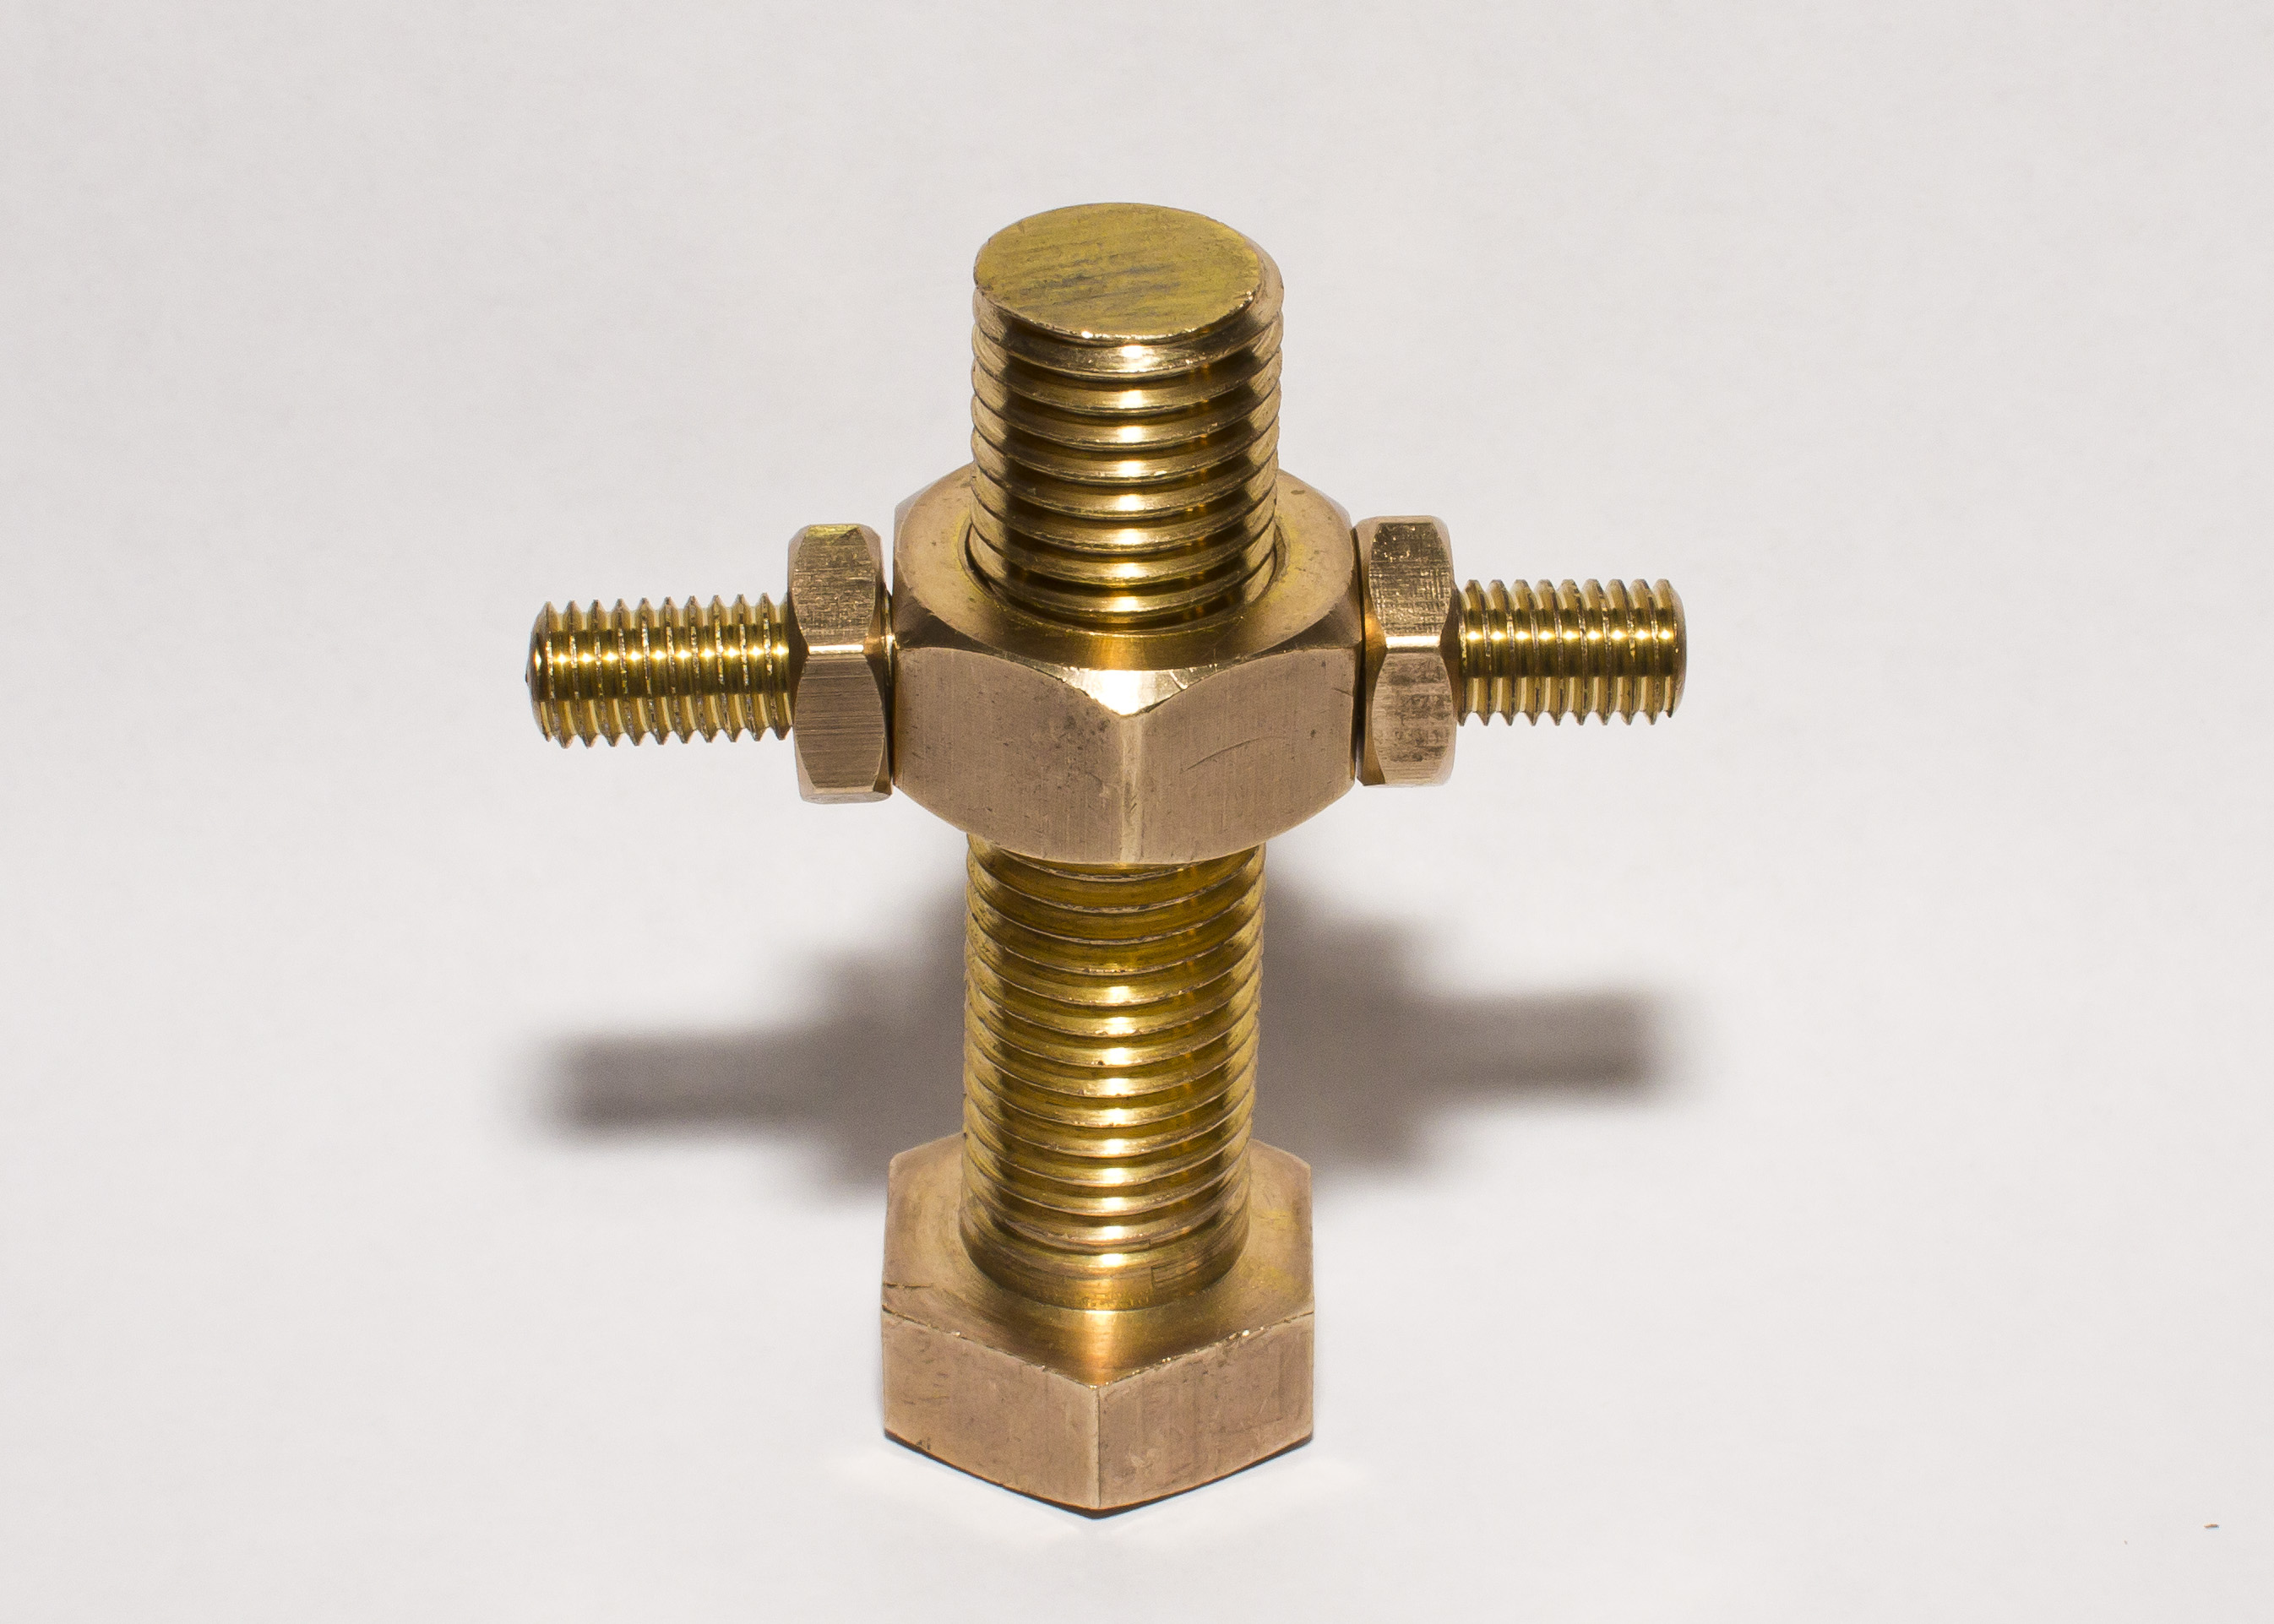 Brass Bolt Puzzle